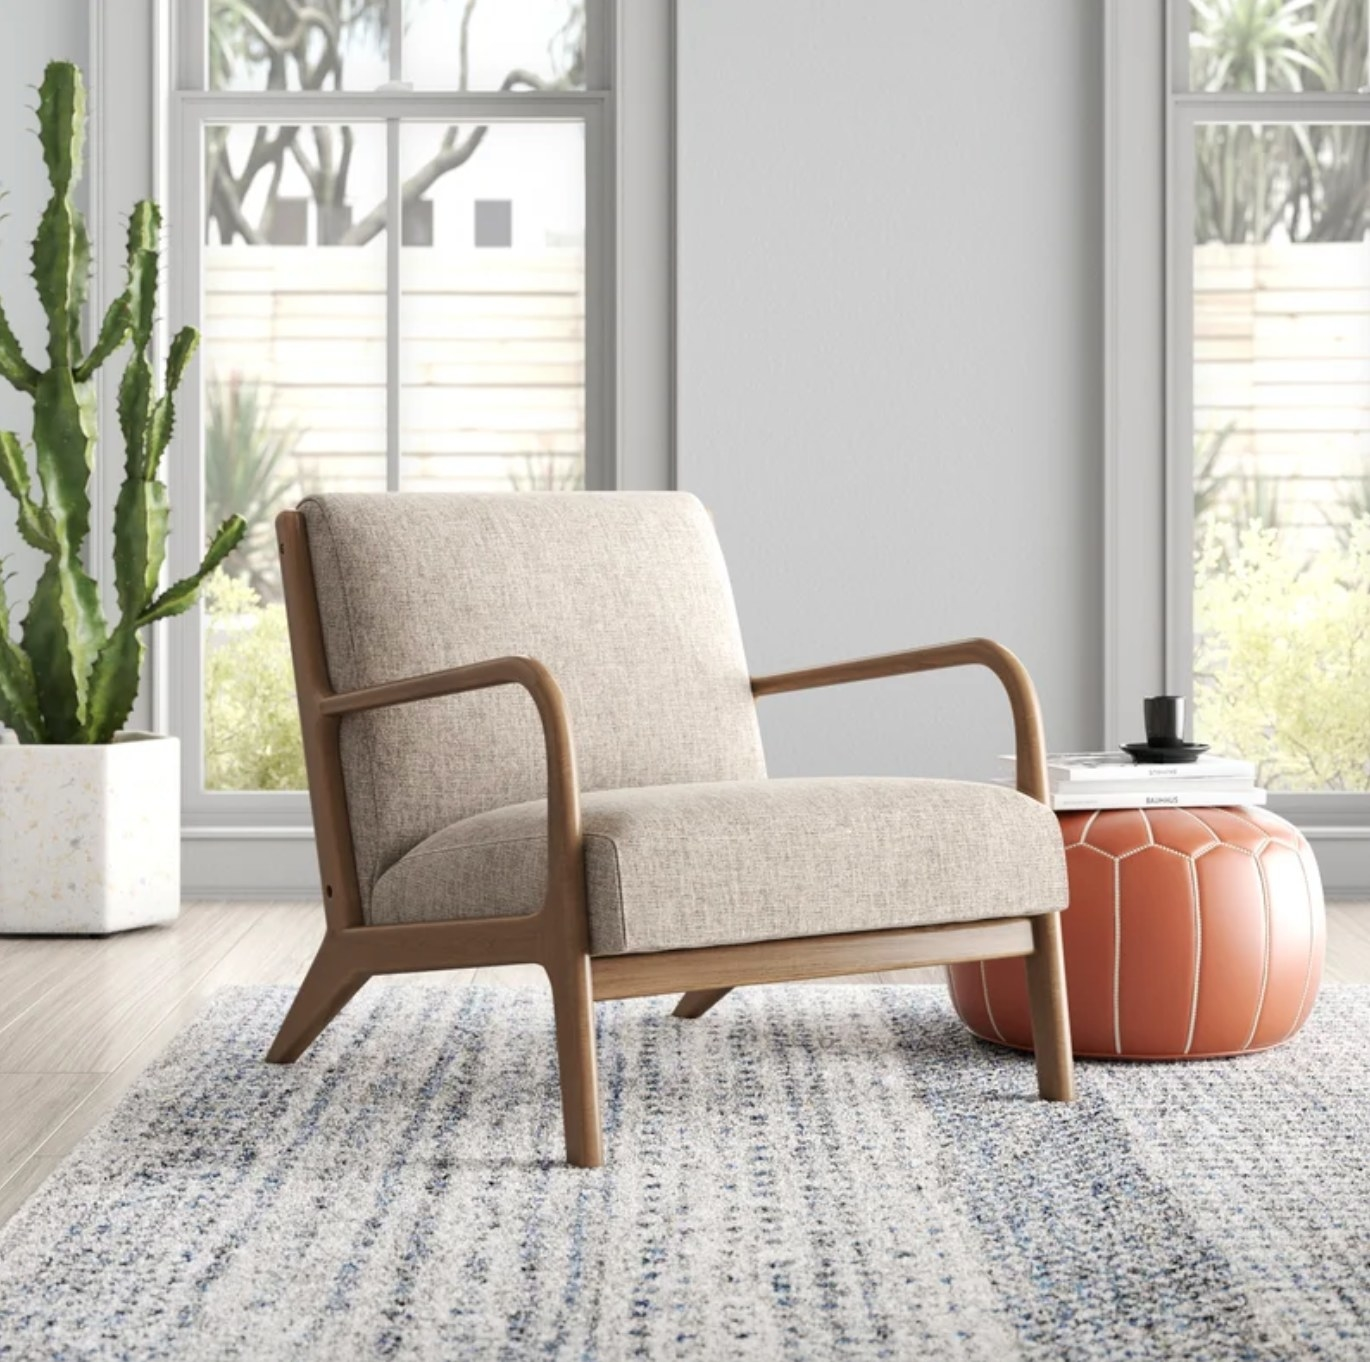 The midcentury armchair in taupe next to an orange pouf